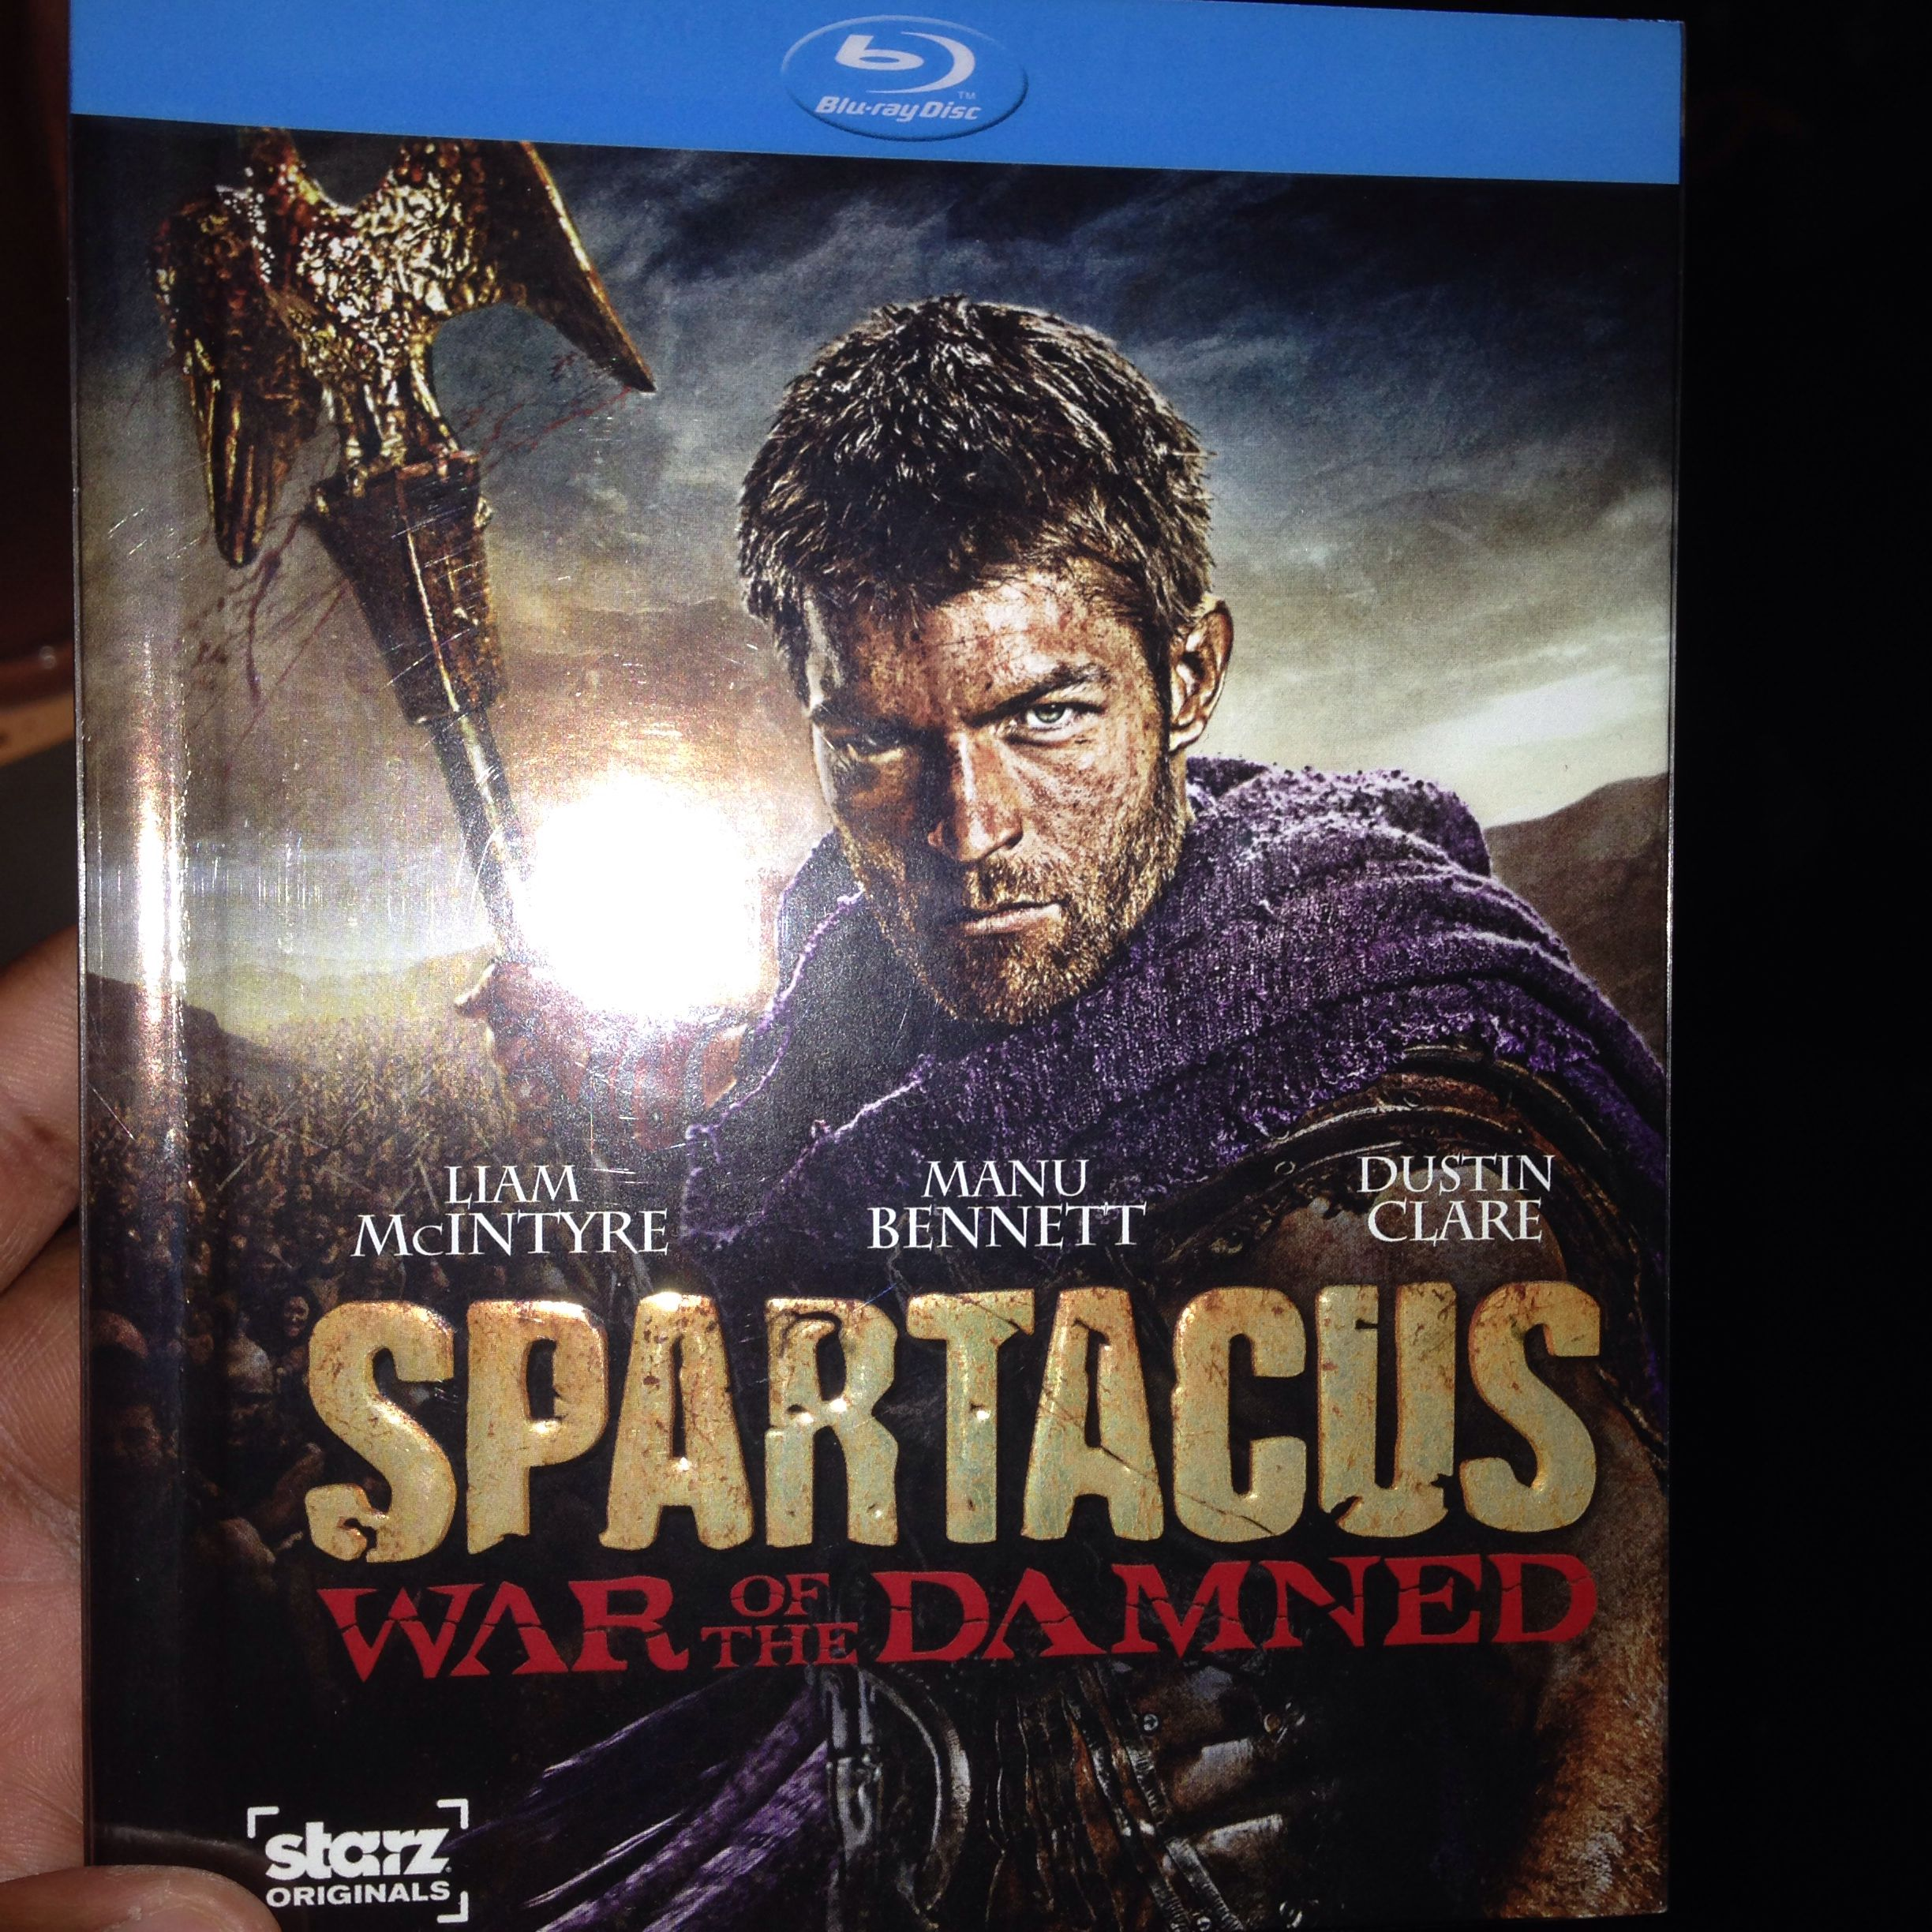 What should have been a genre show became one of the best on tv. I will miss Spartacus